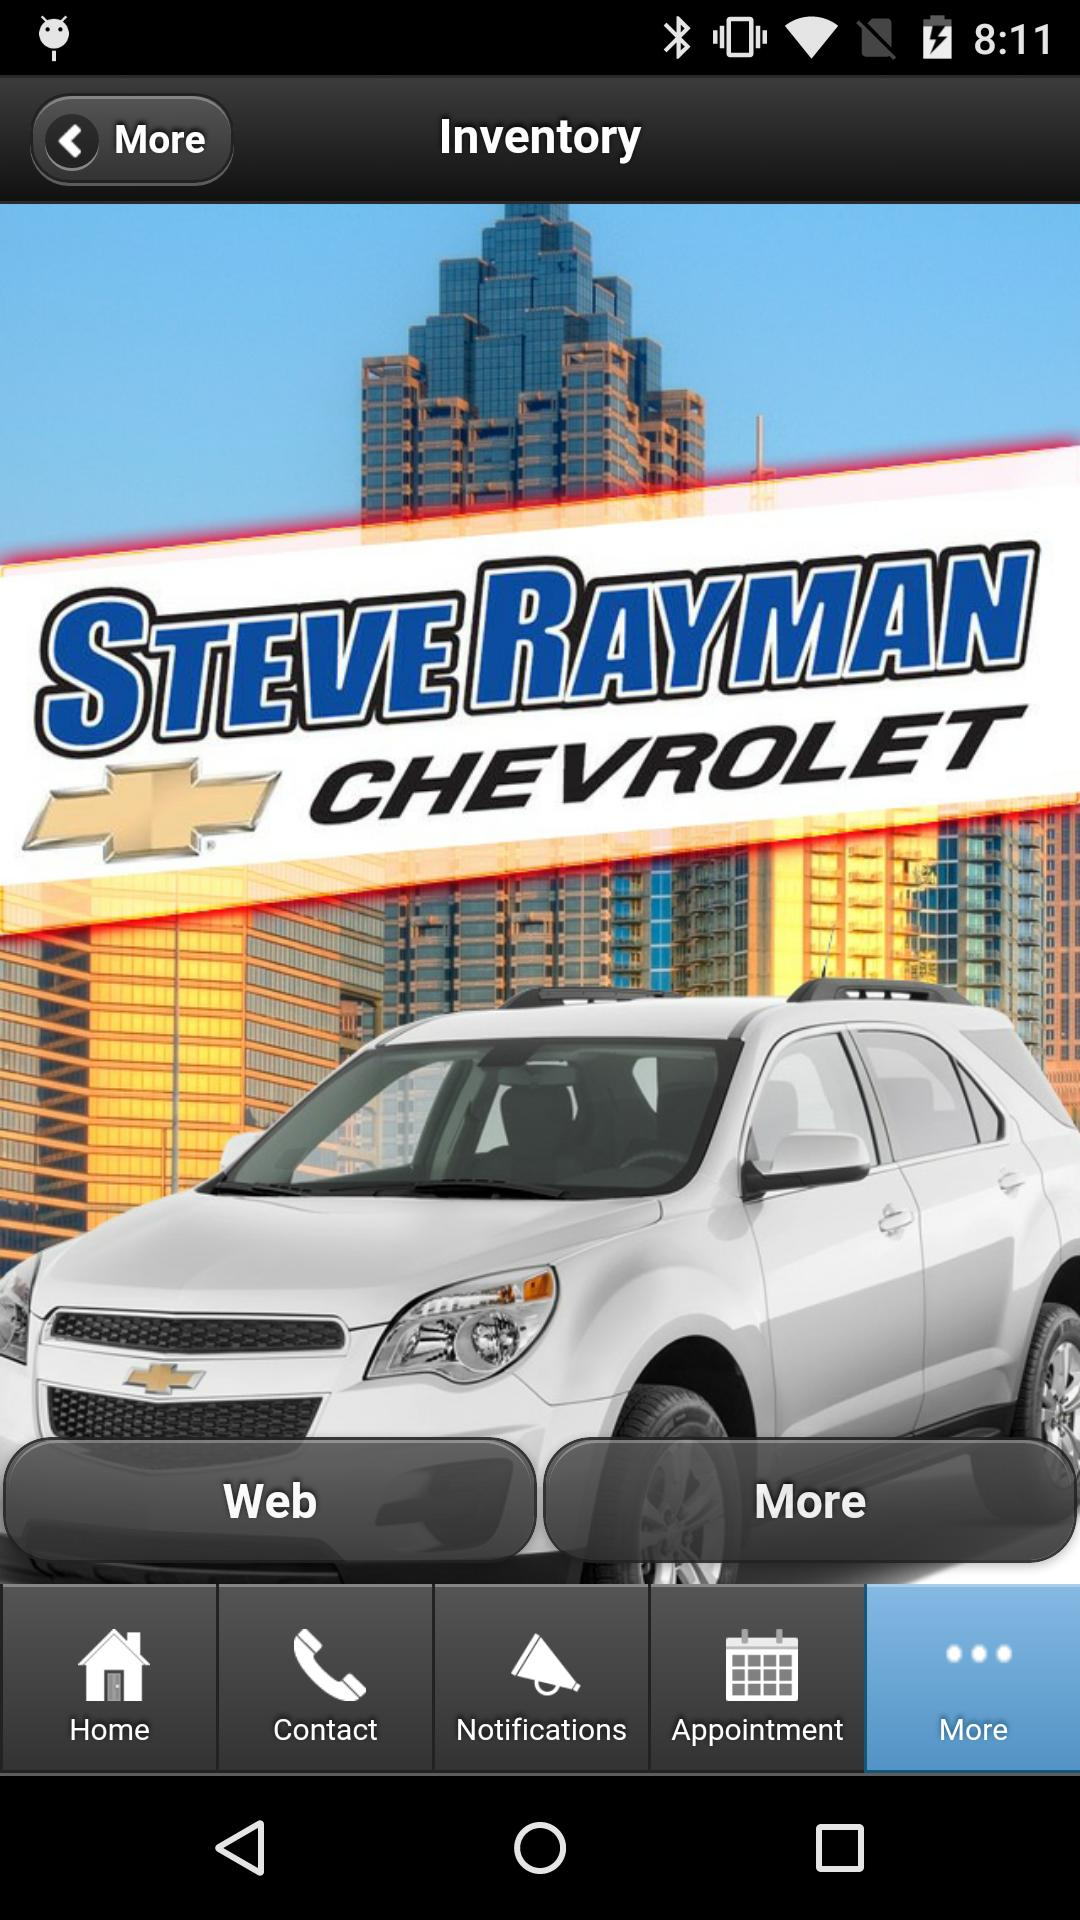 Steve Rayman Chevrolet for Android - APK Download | steve rayman chevrolet